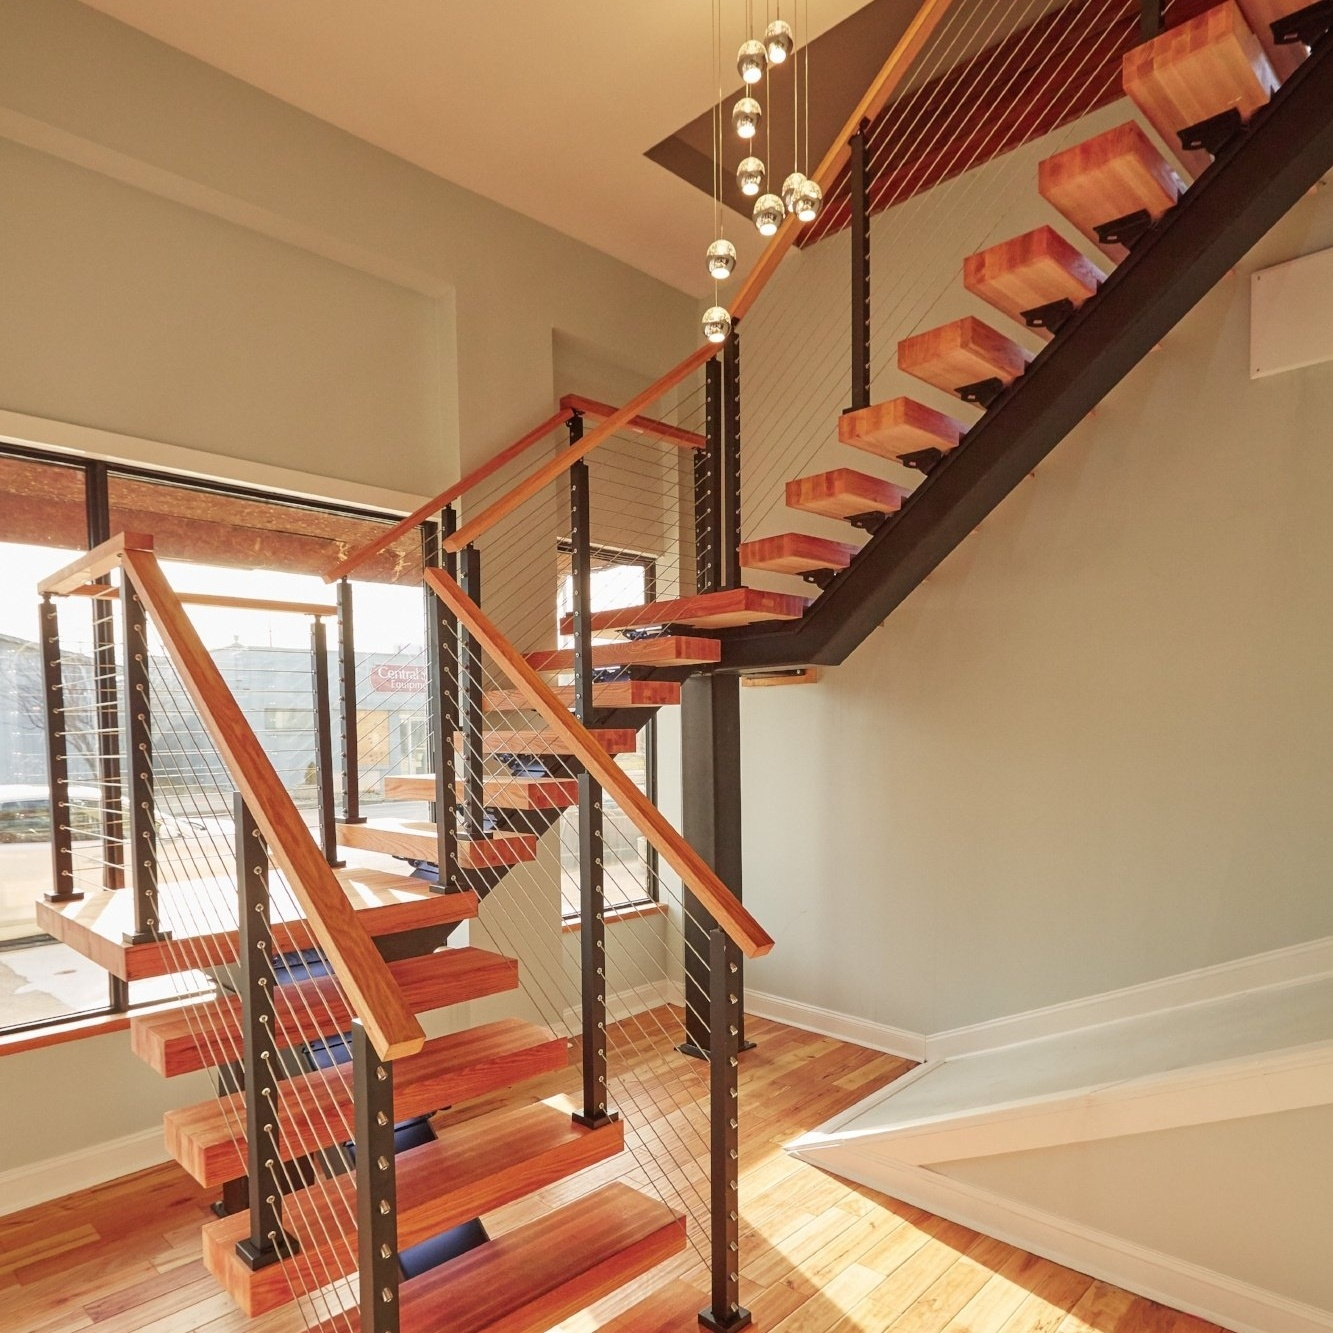 How To Build Floating Stairs Enhance Your Space With Floating Stairs